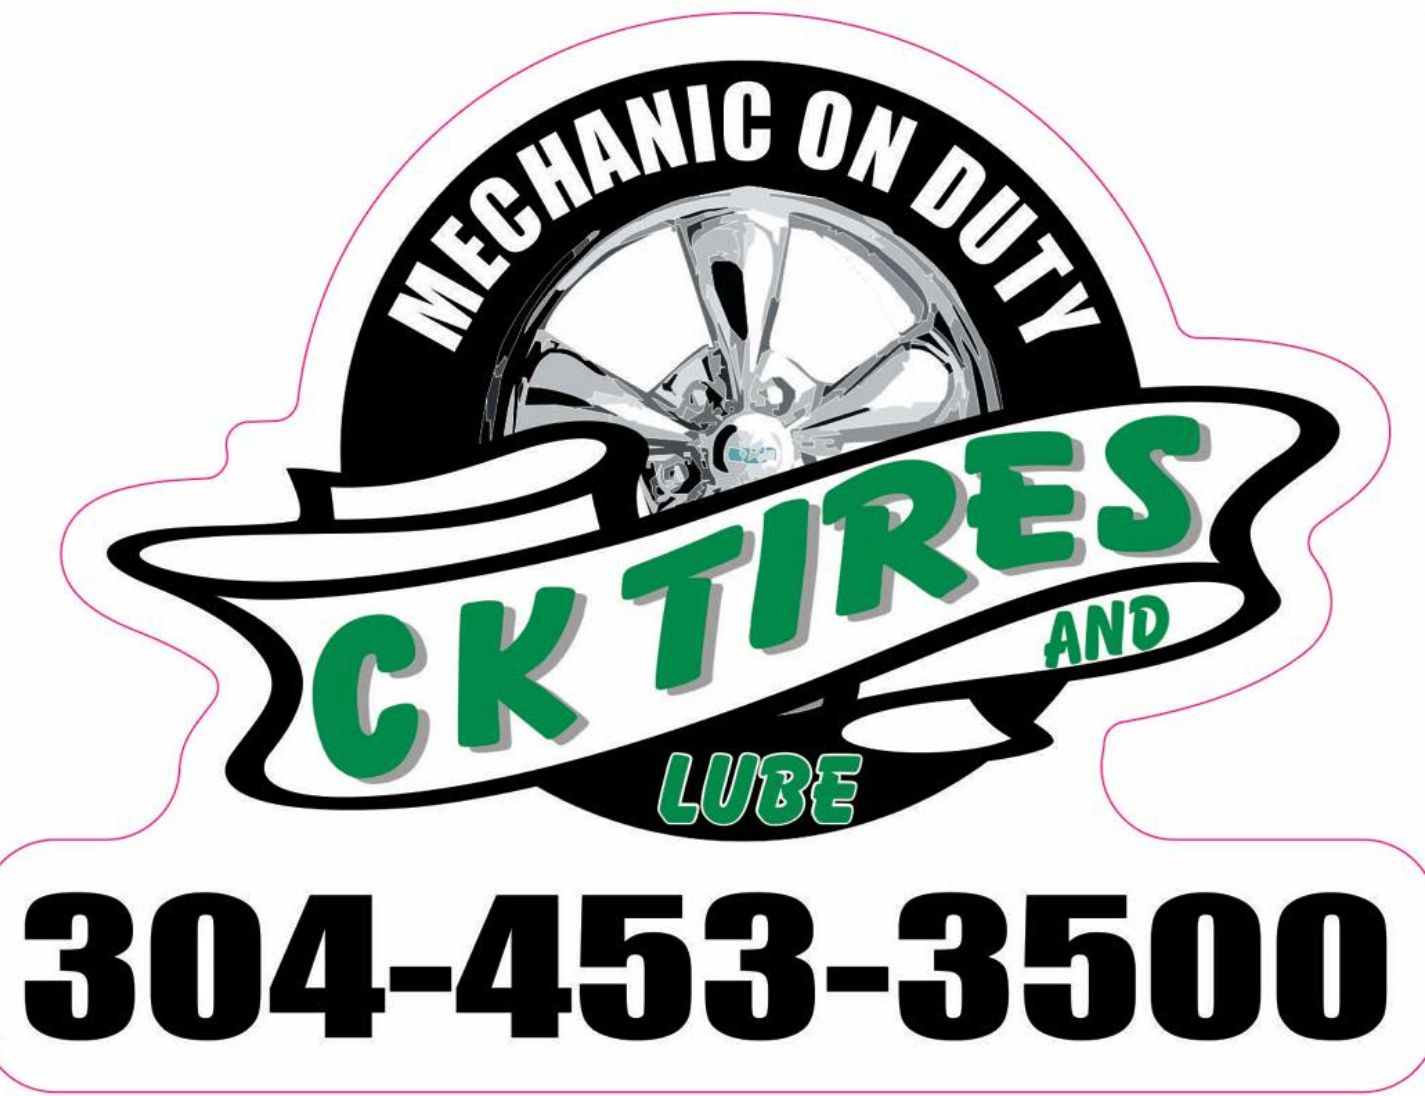 C K Tires & Lube | Best Place For Tires In The TriState  304-453-3500 Monday thru Friday 8 to 6. Saturday 9 to 1